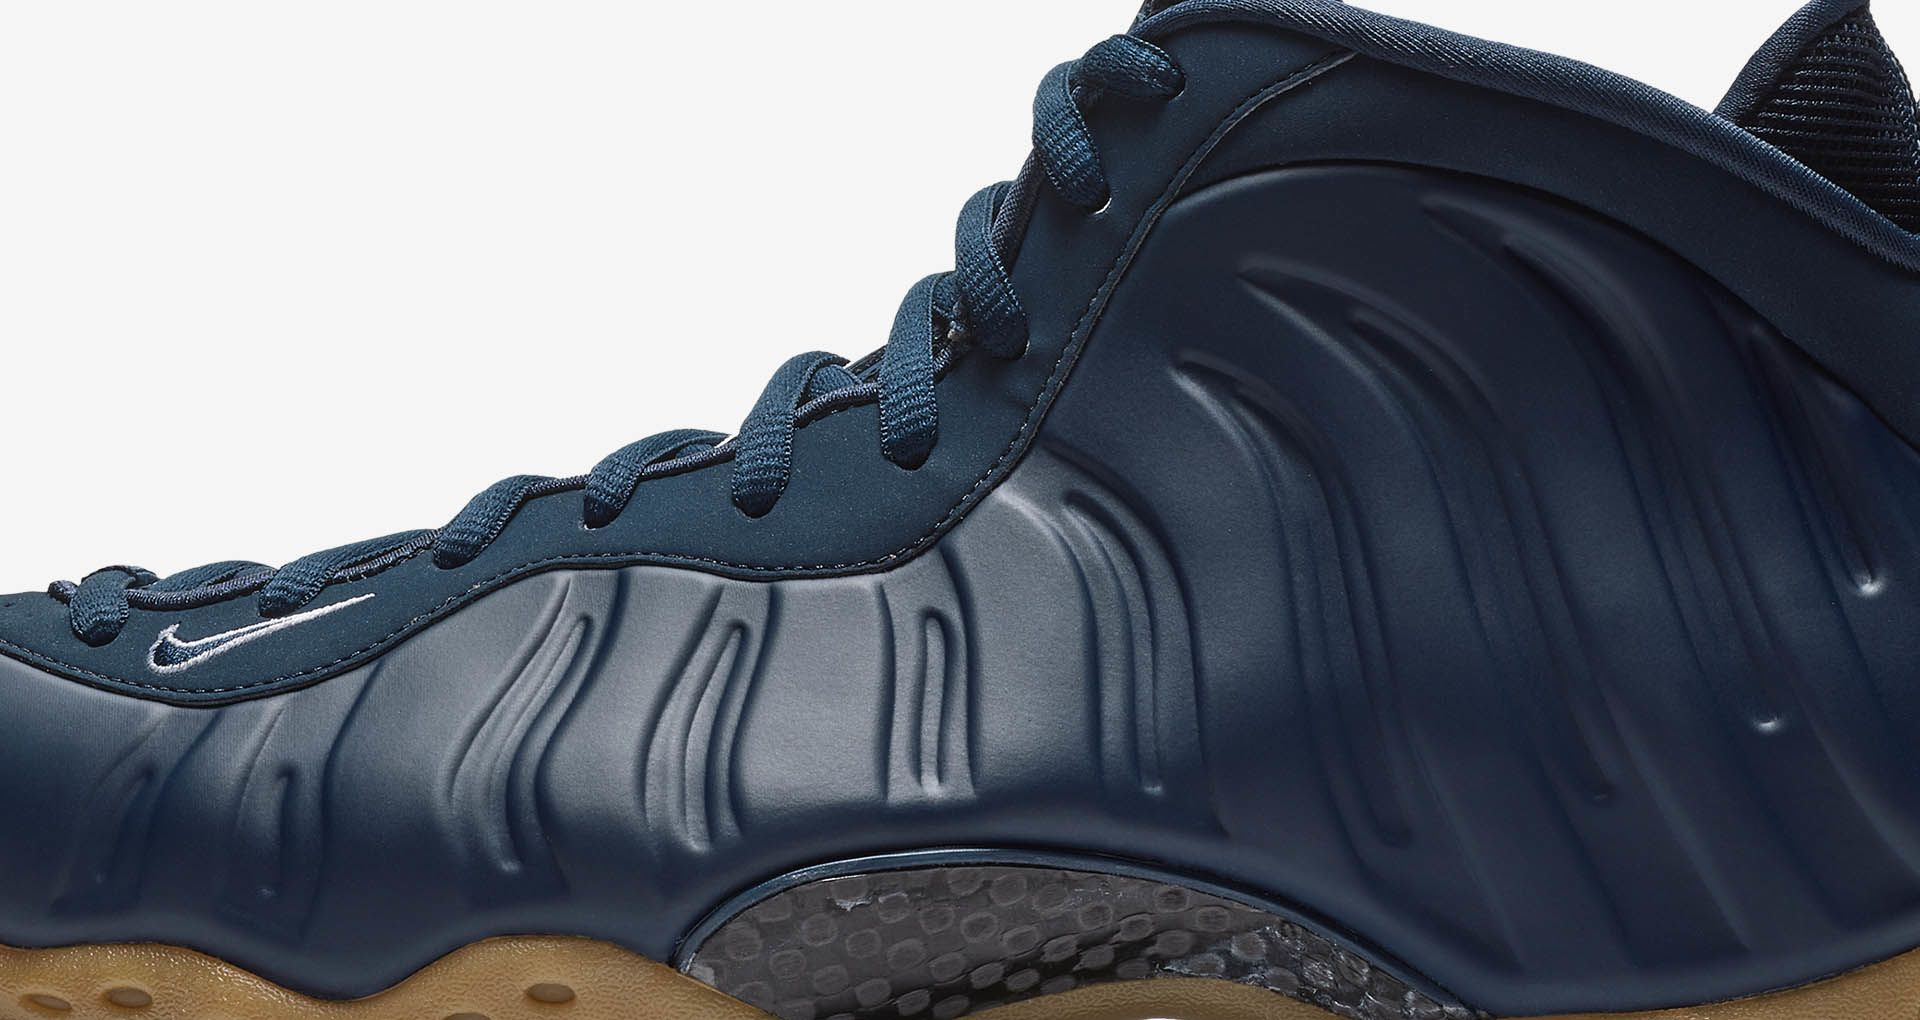 info for 074b2 7ccd4 Air Foamposite One 'Midnight Navy & Gum Light Brown' Release ...